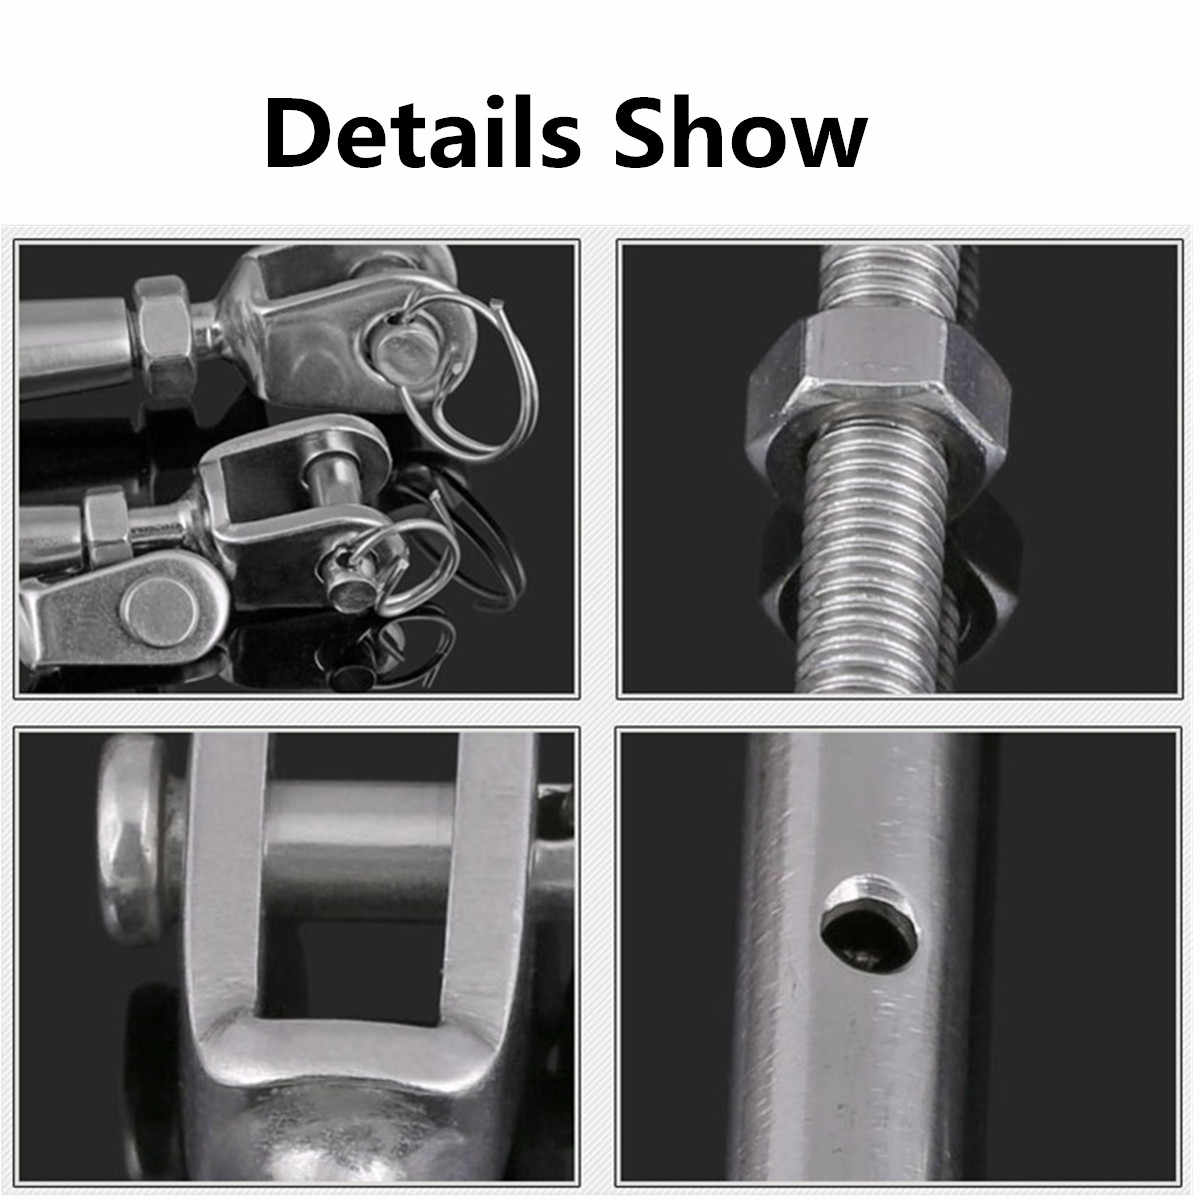 8mm/6mm/5mm 316 Stainless Steel Rigging Screw For Fastening and Binding Rope Safe Closed Body Jaw/Jaw Turnbuckle For Boat Yacht